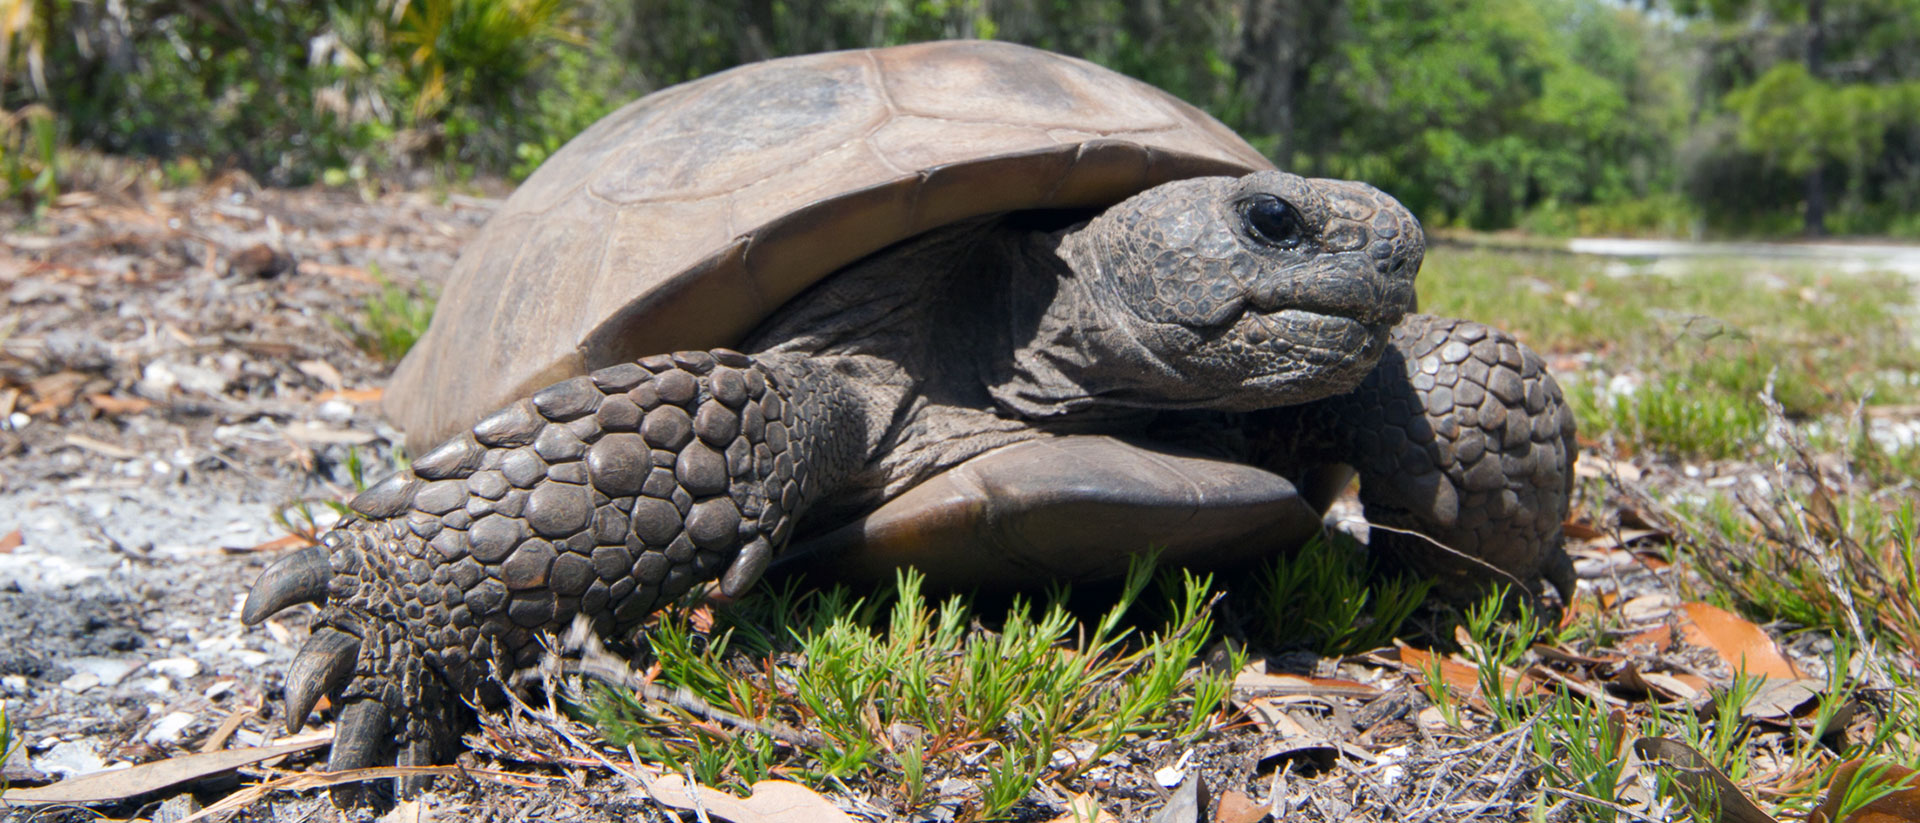 Gopher-Schildkröte / Gopherus polyphemus / Gopher Tortoise